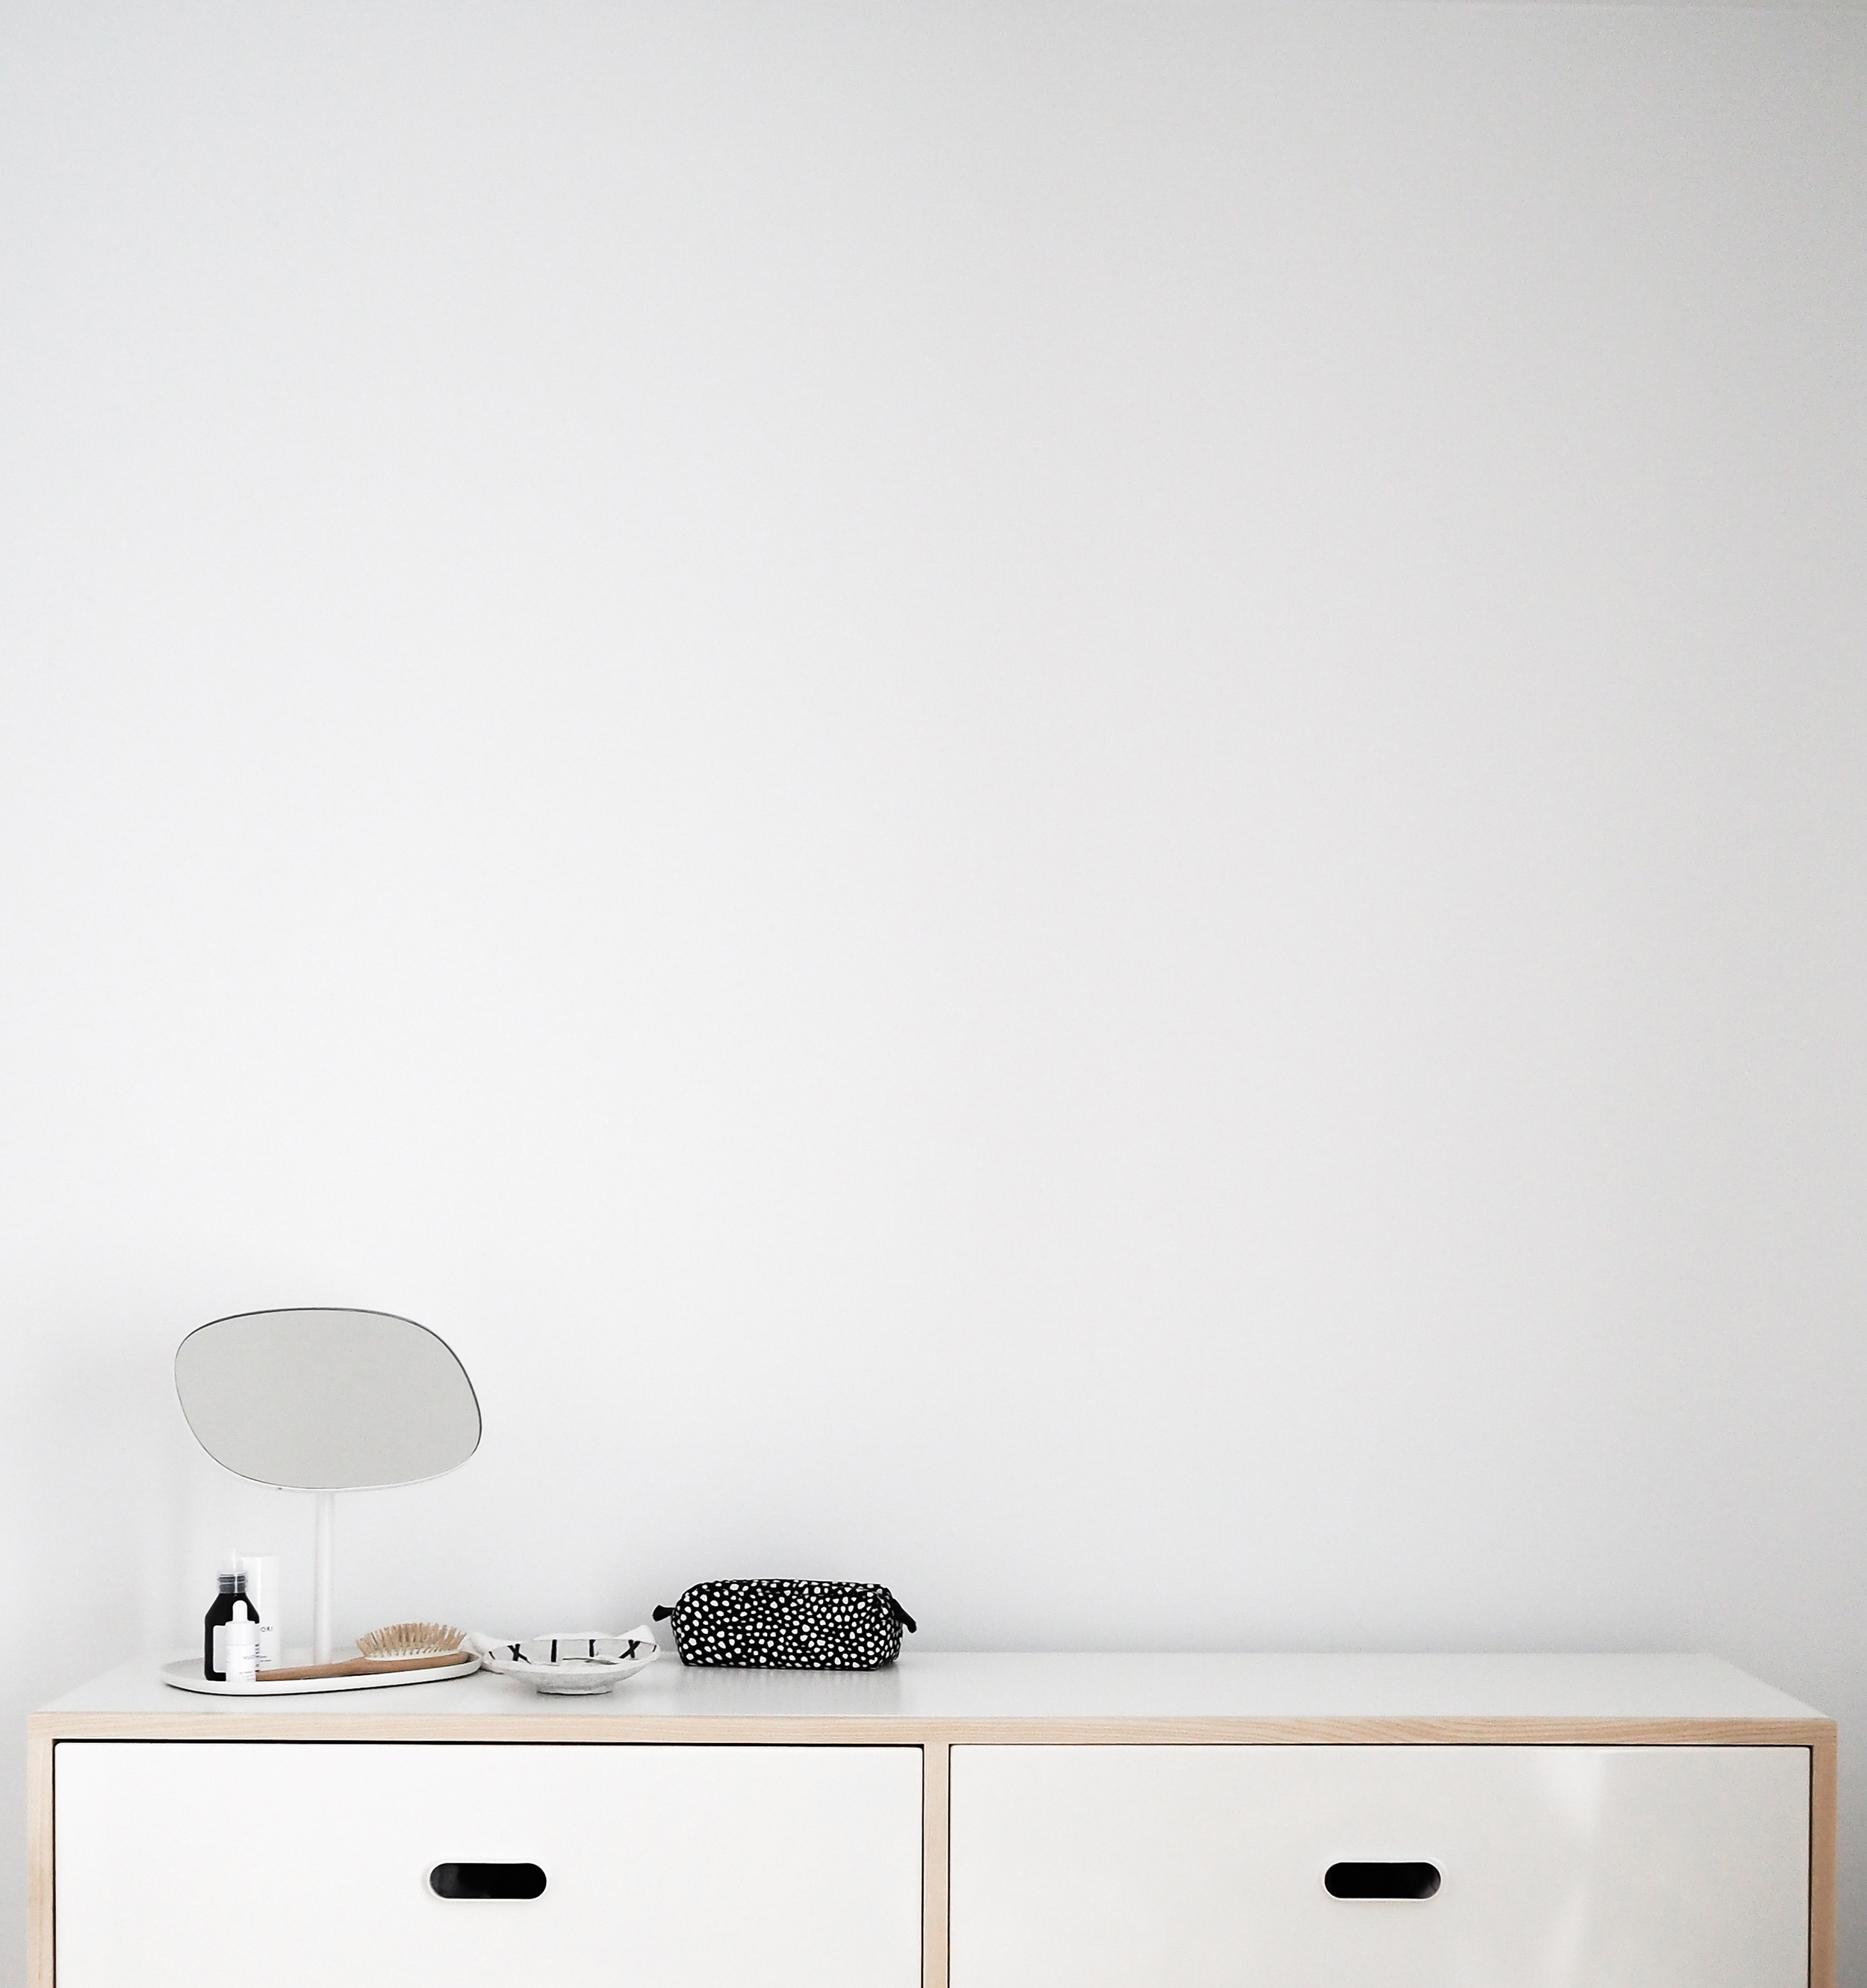 Kabino drawers, Normann Copenhagen